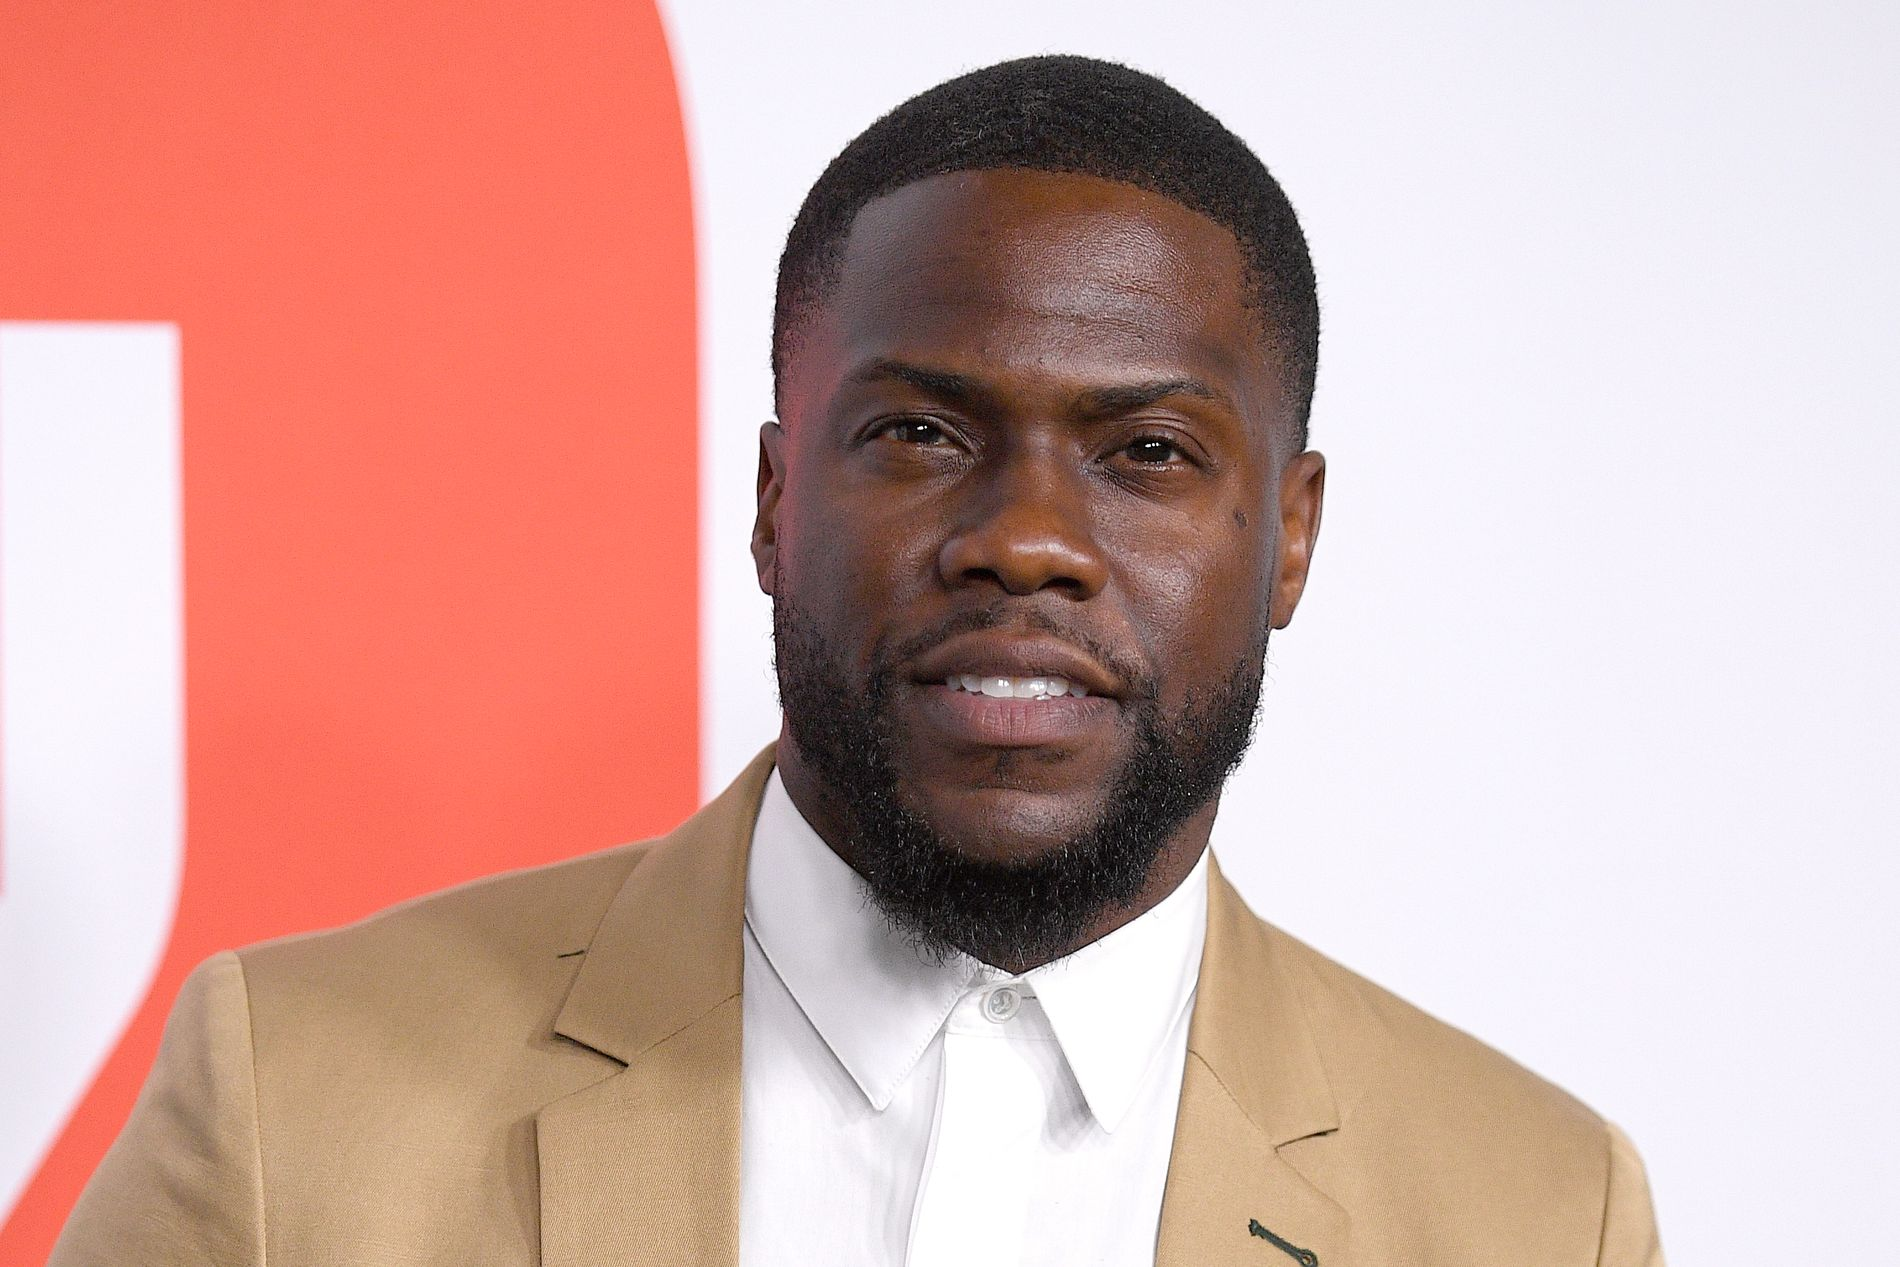 ACCIDENTED IN ACCIDENT: Comedian Kevin Hart had a serious car breakdown by Sunday. Here during the Sydney Film Festival in June.